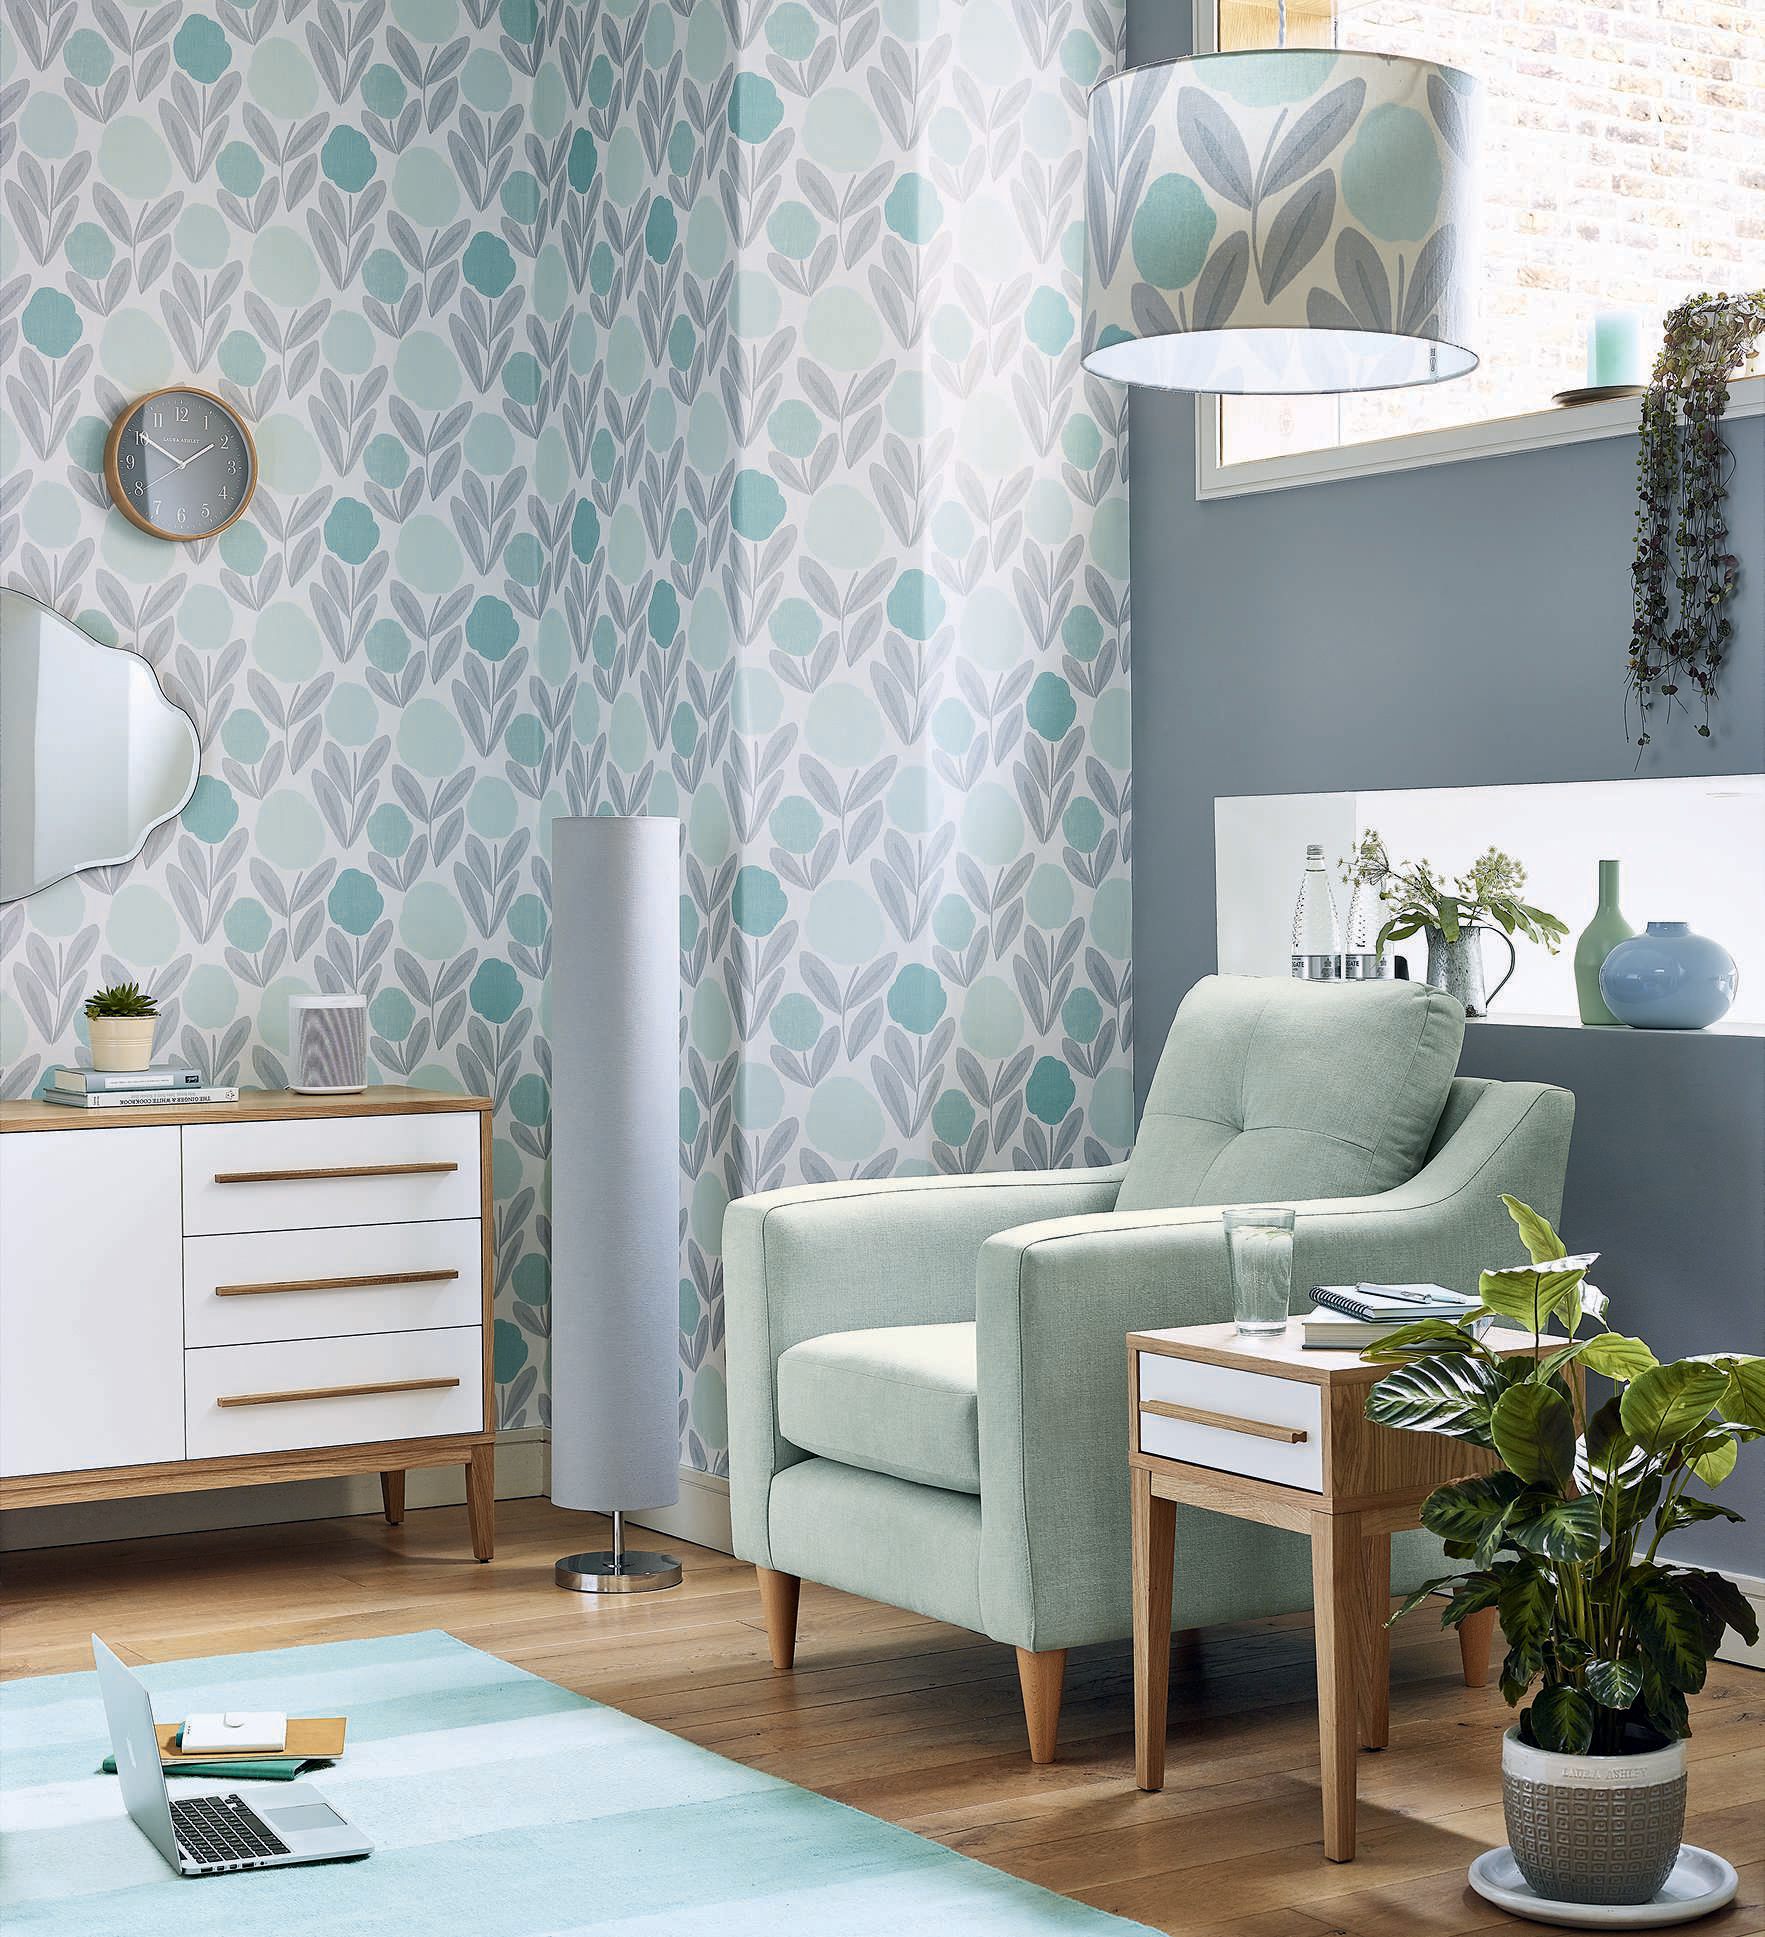 Wallpaper: Everything You Need to Know | Laura Ashley Blog